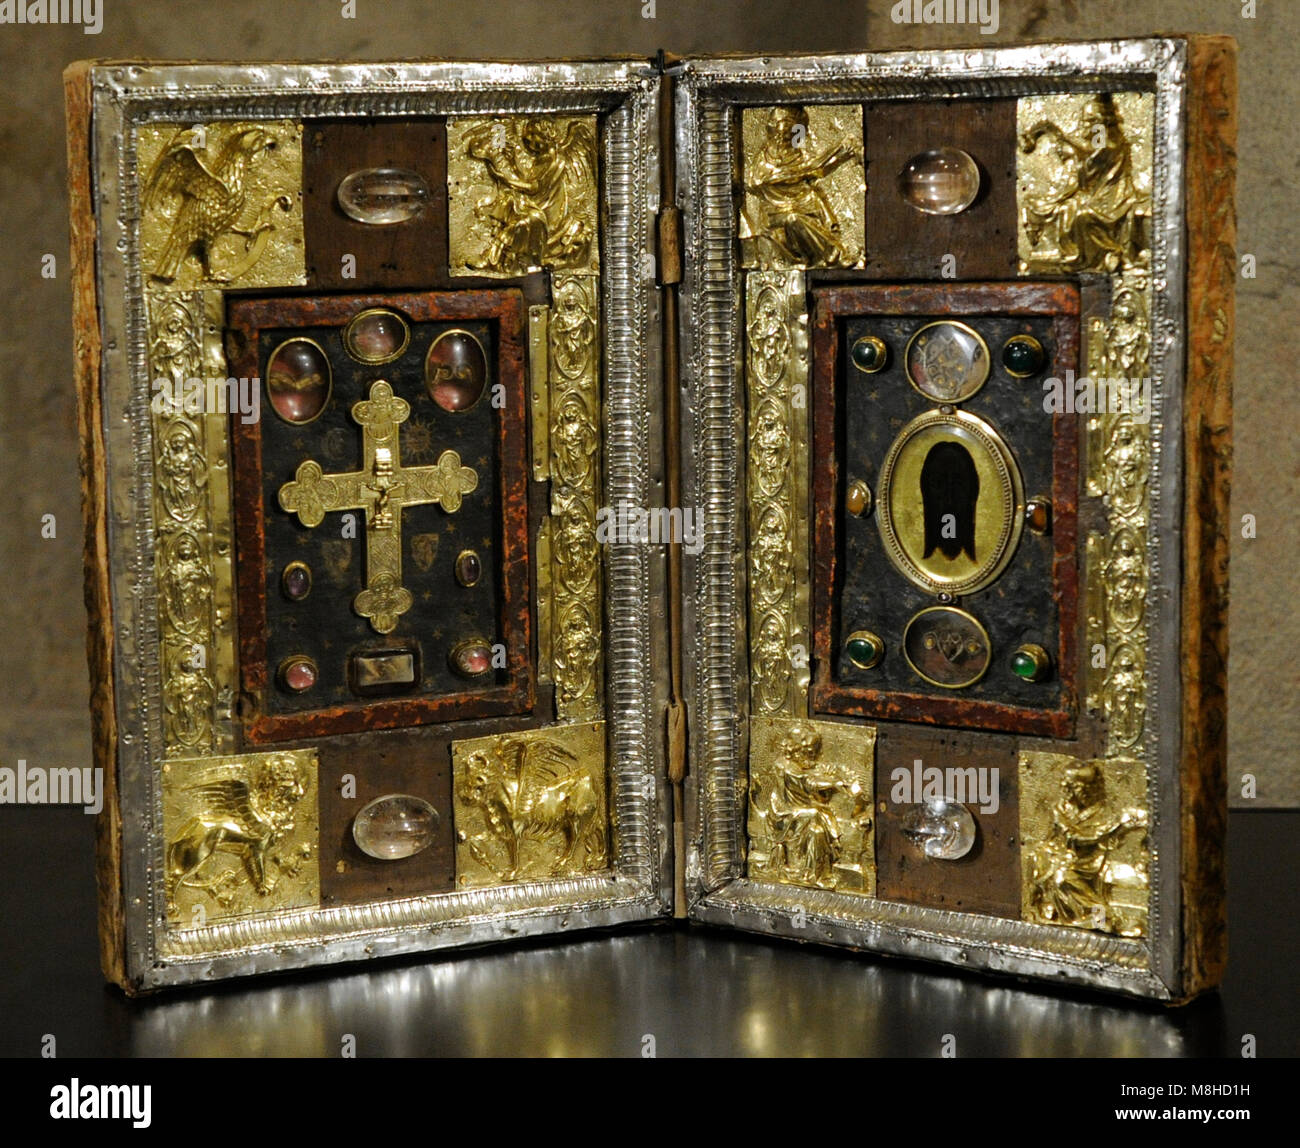 Reliquary Diptych. 14th century with later modifications. France. Reliefes: silver, repousse and gilded. Varieties - Stock Image